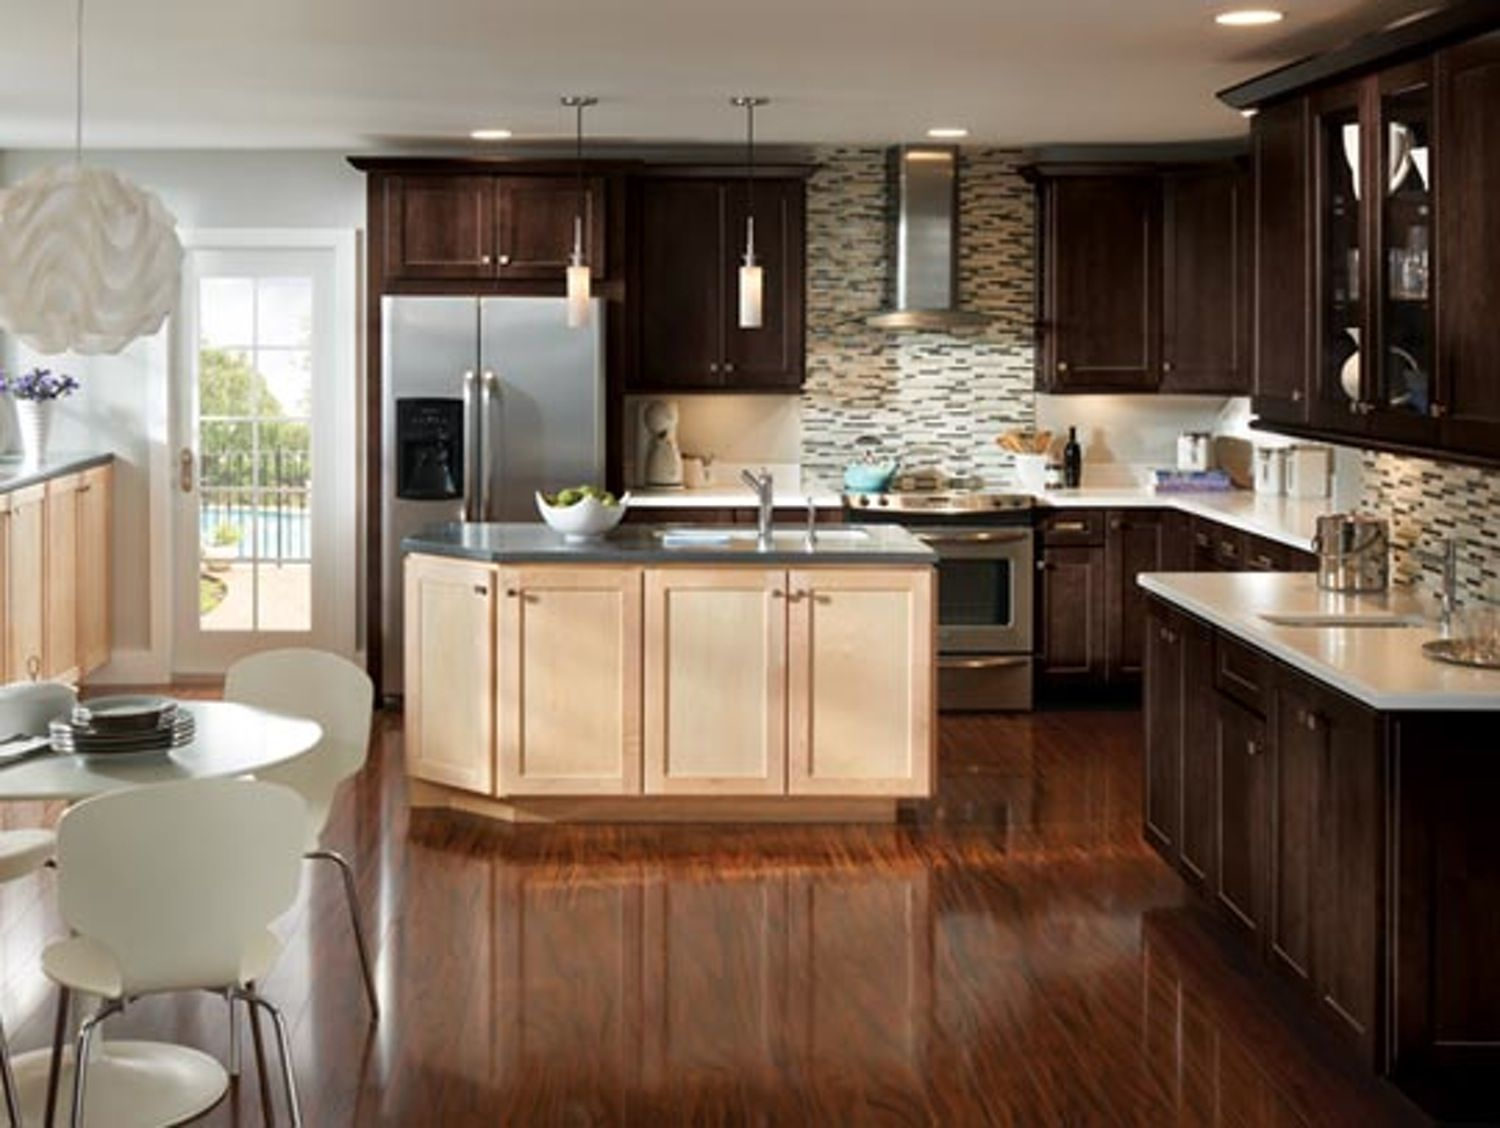 Renovation Resources: 10 Brands of American Made Kitchen ...